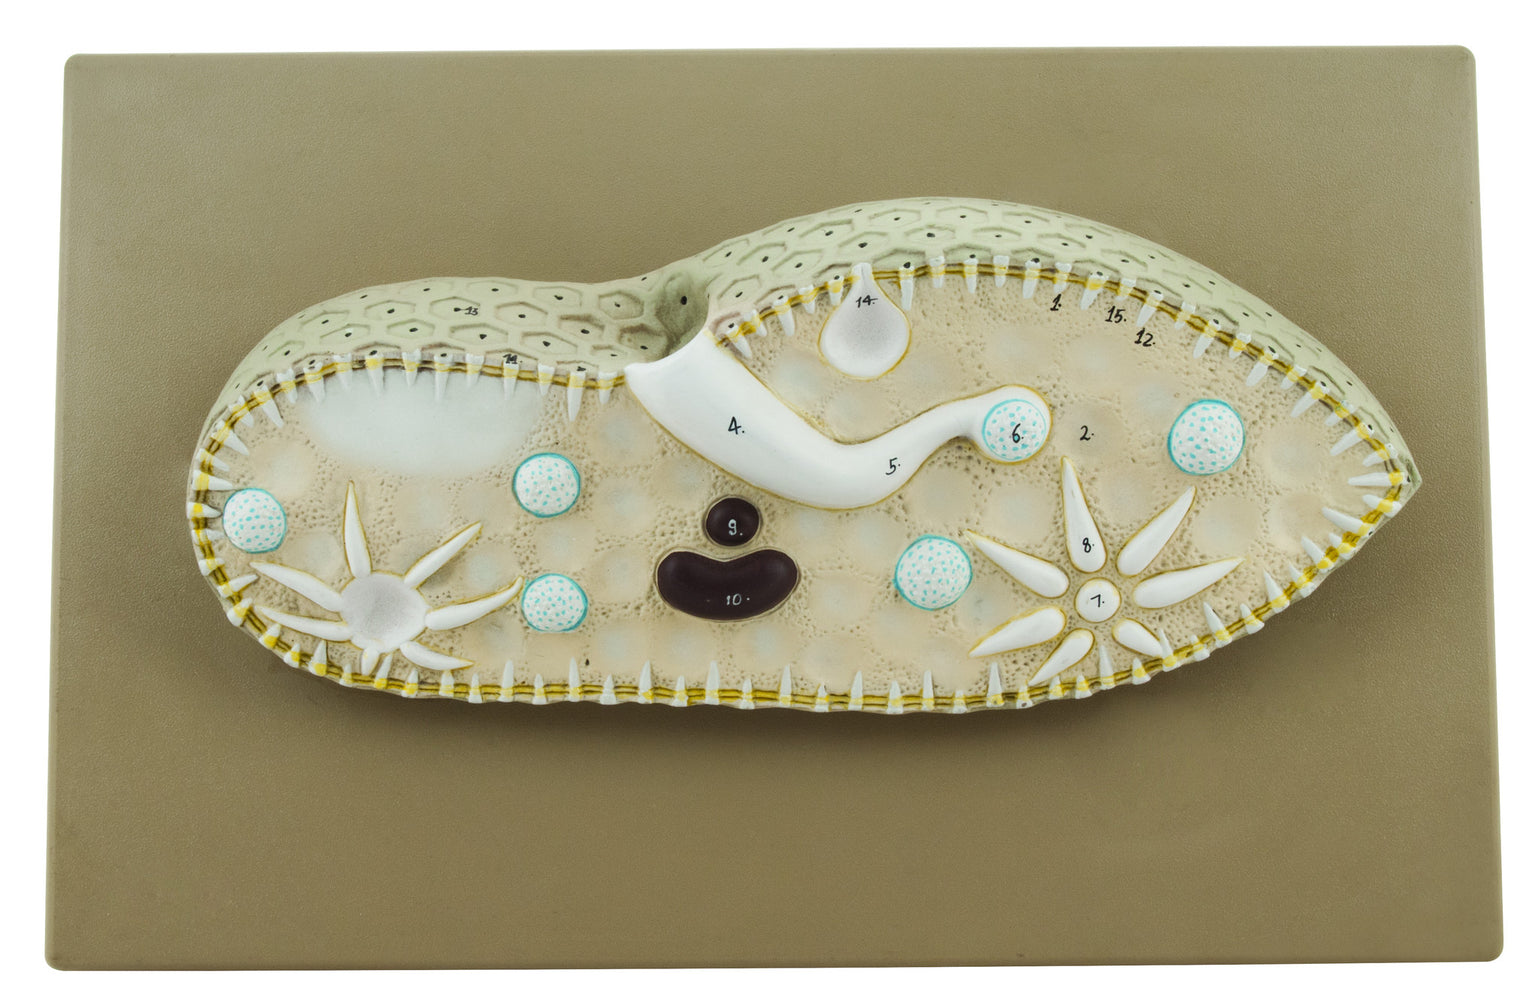 EISCO Paramecium Model